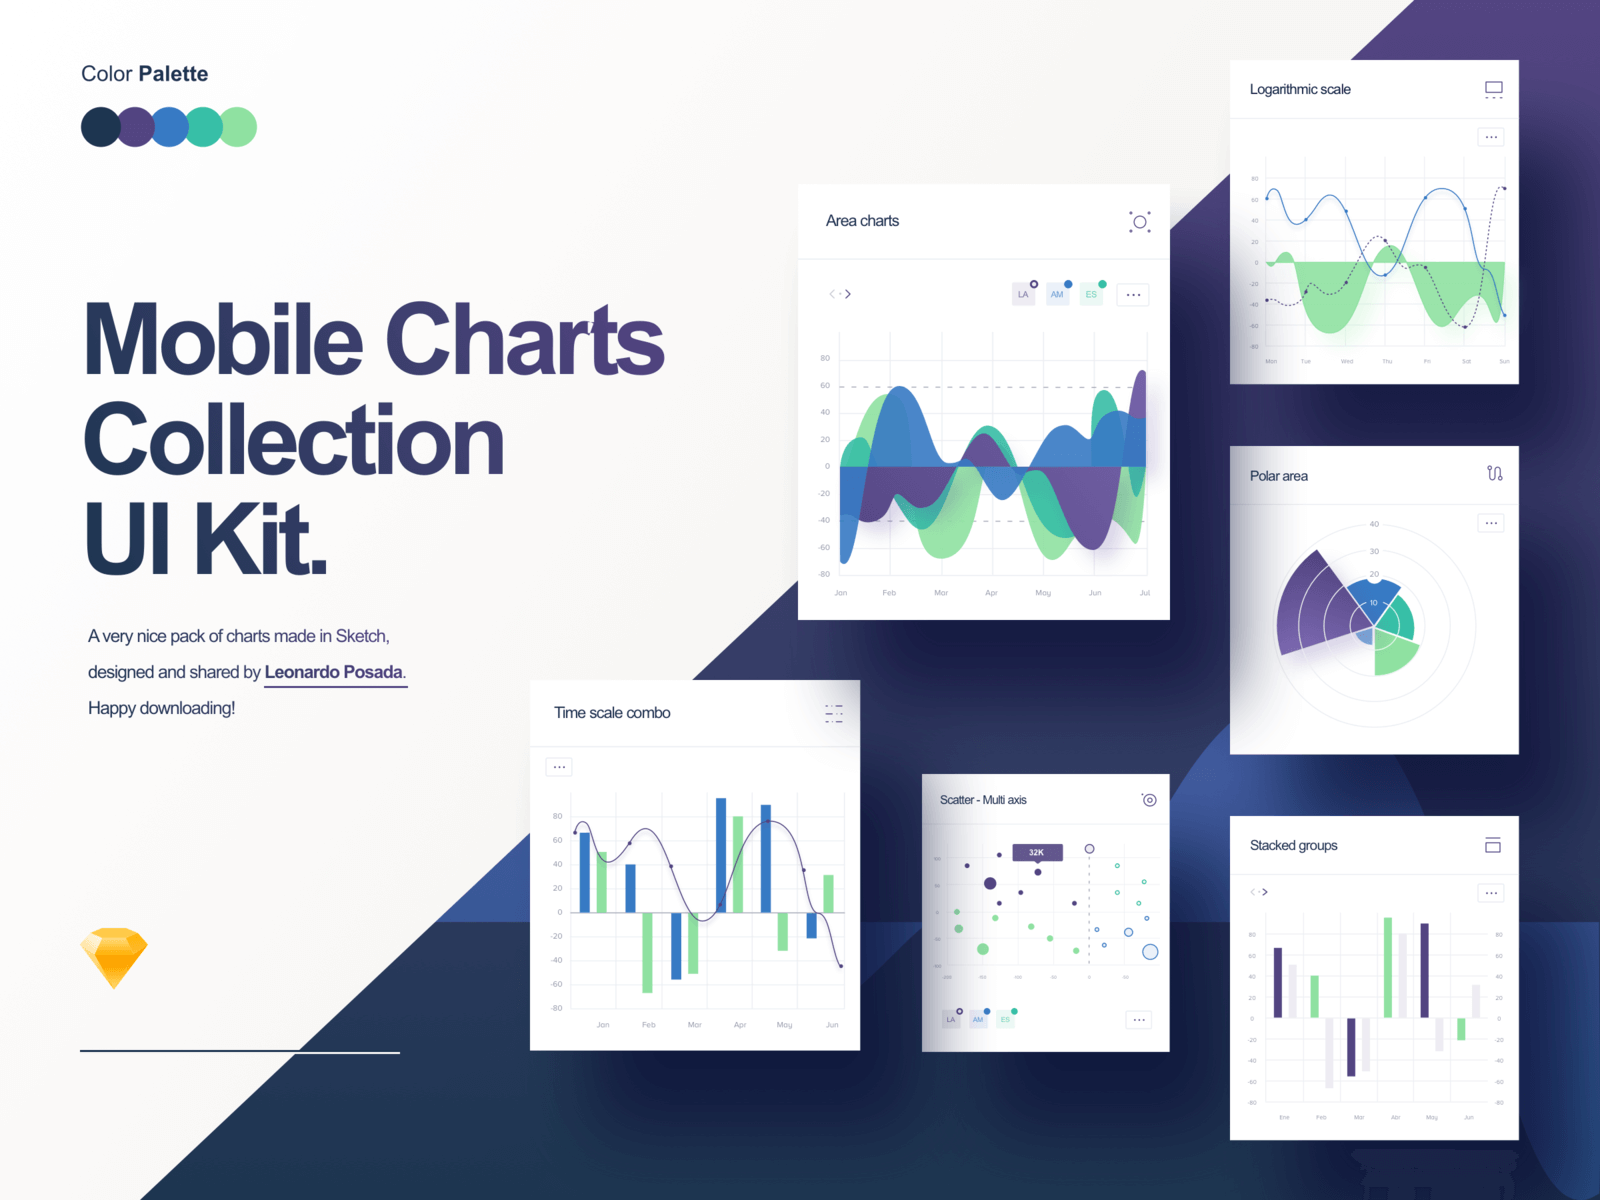 Mobile Charts Collection cover image